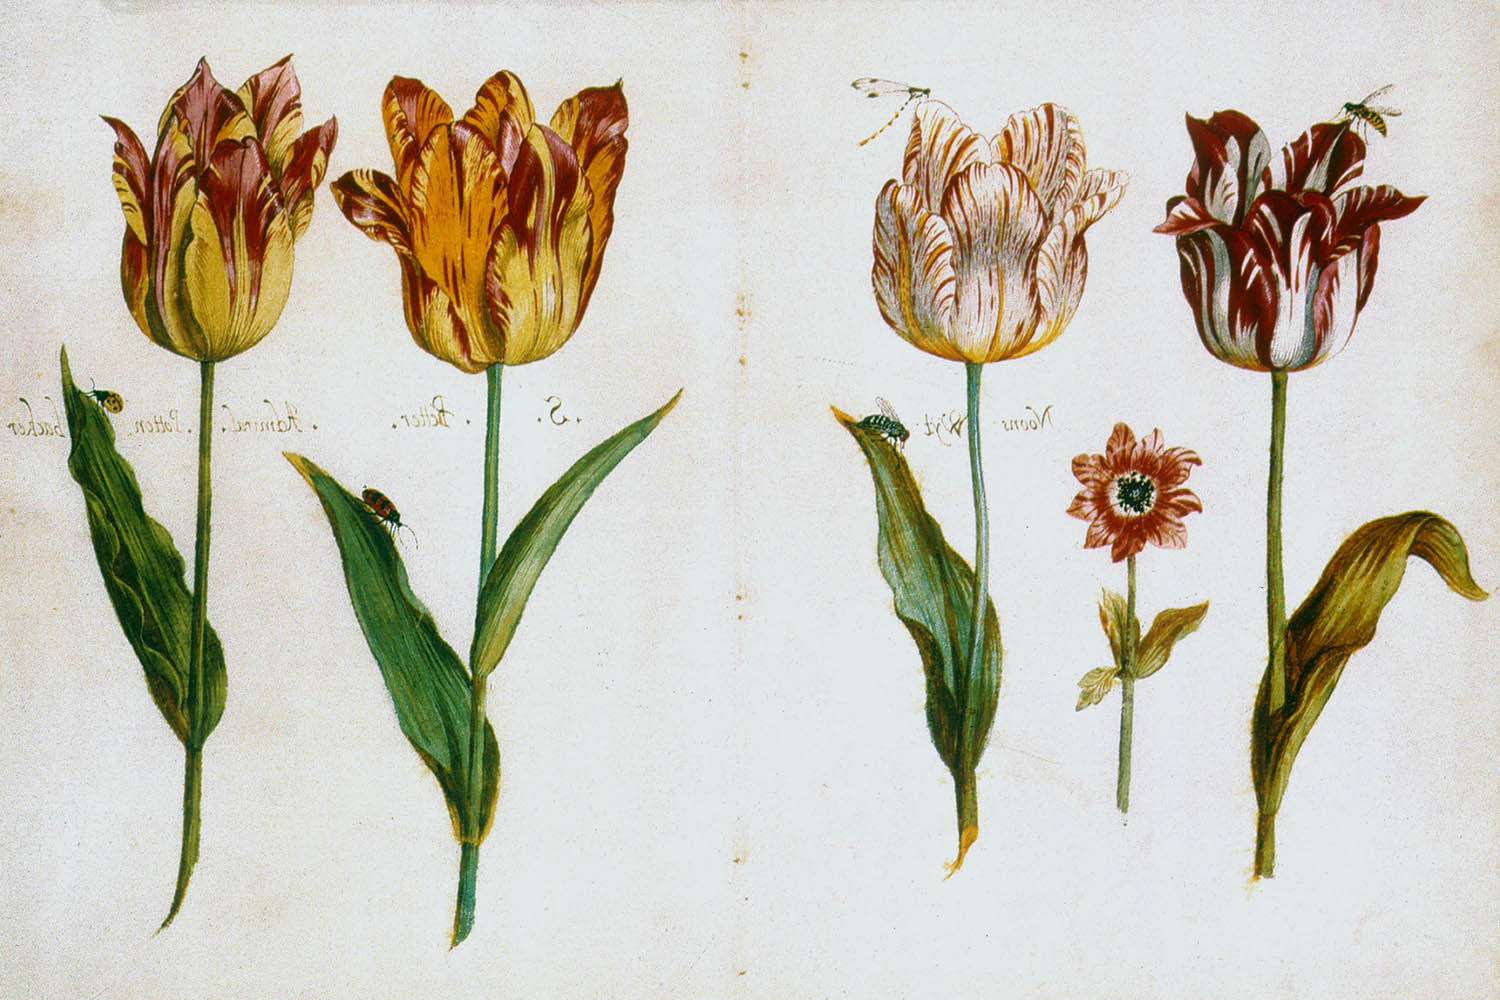 Three tulips and an anemone by Jacob Marrel (1614-1681).